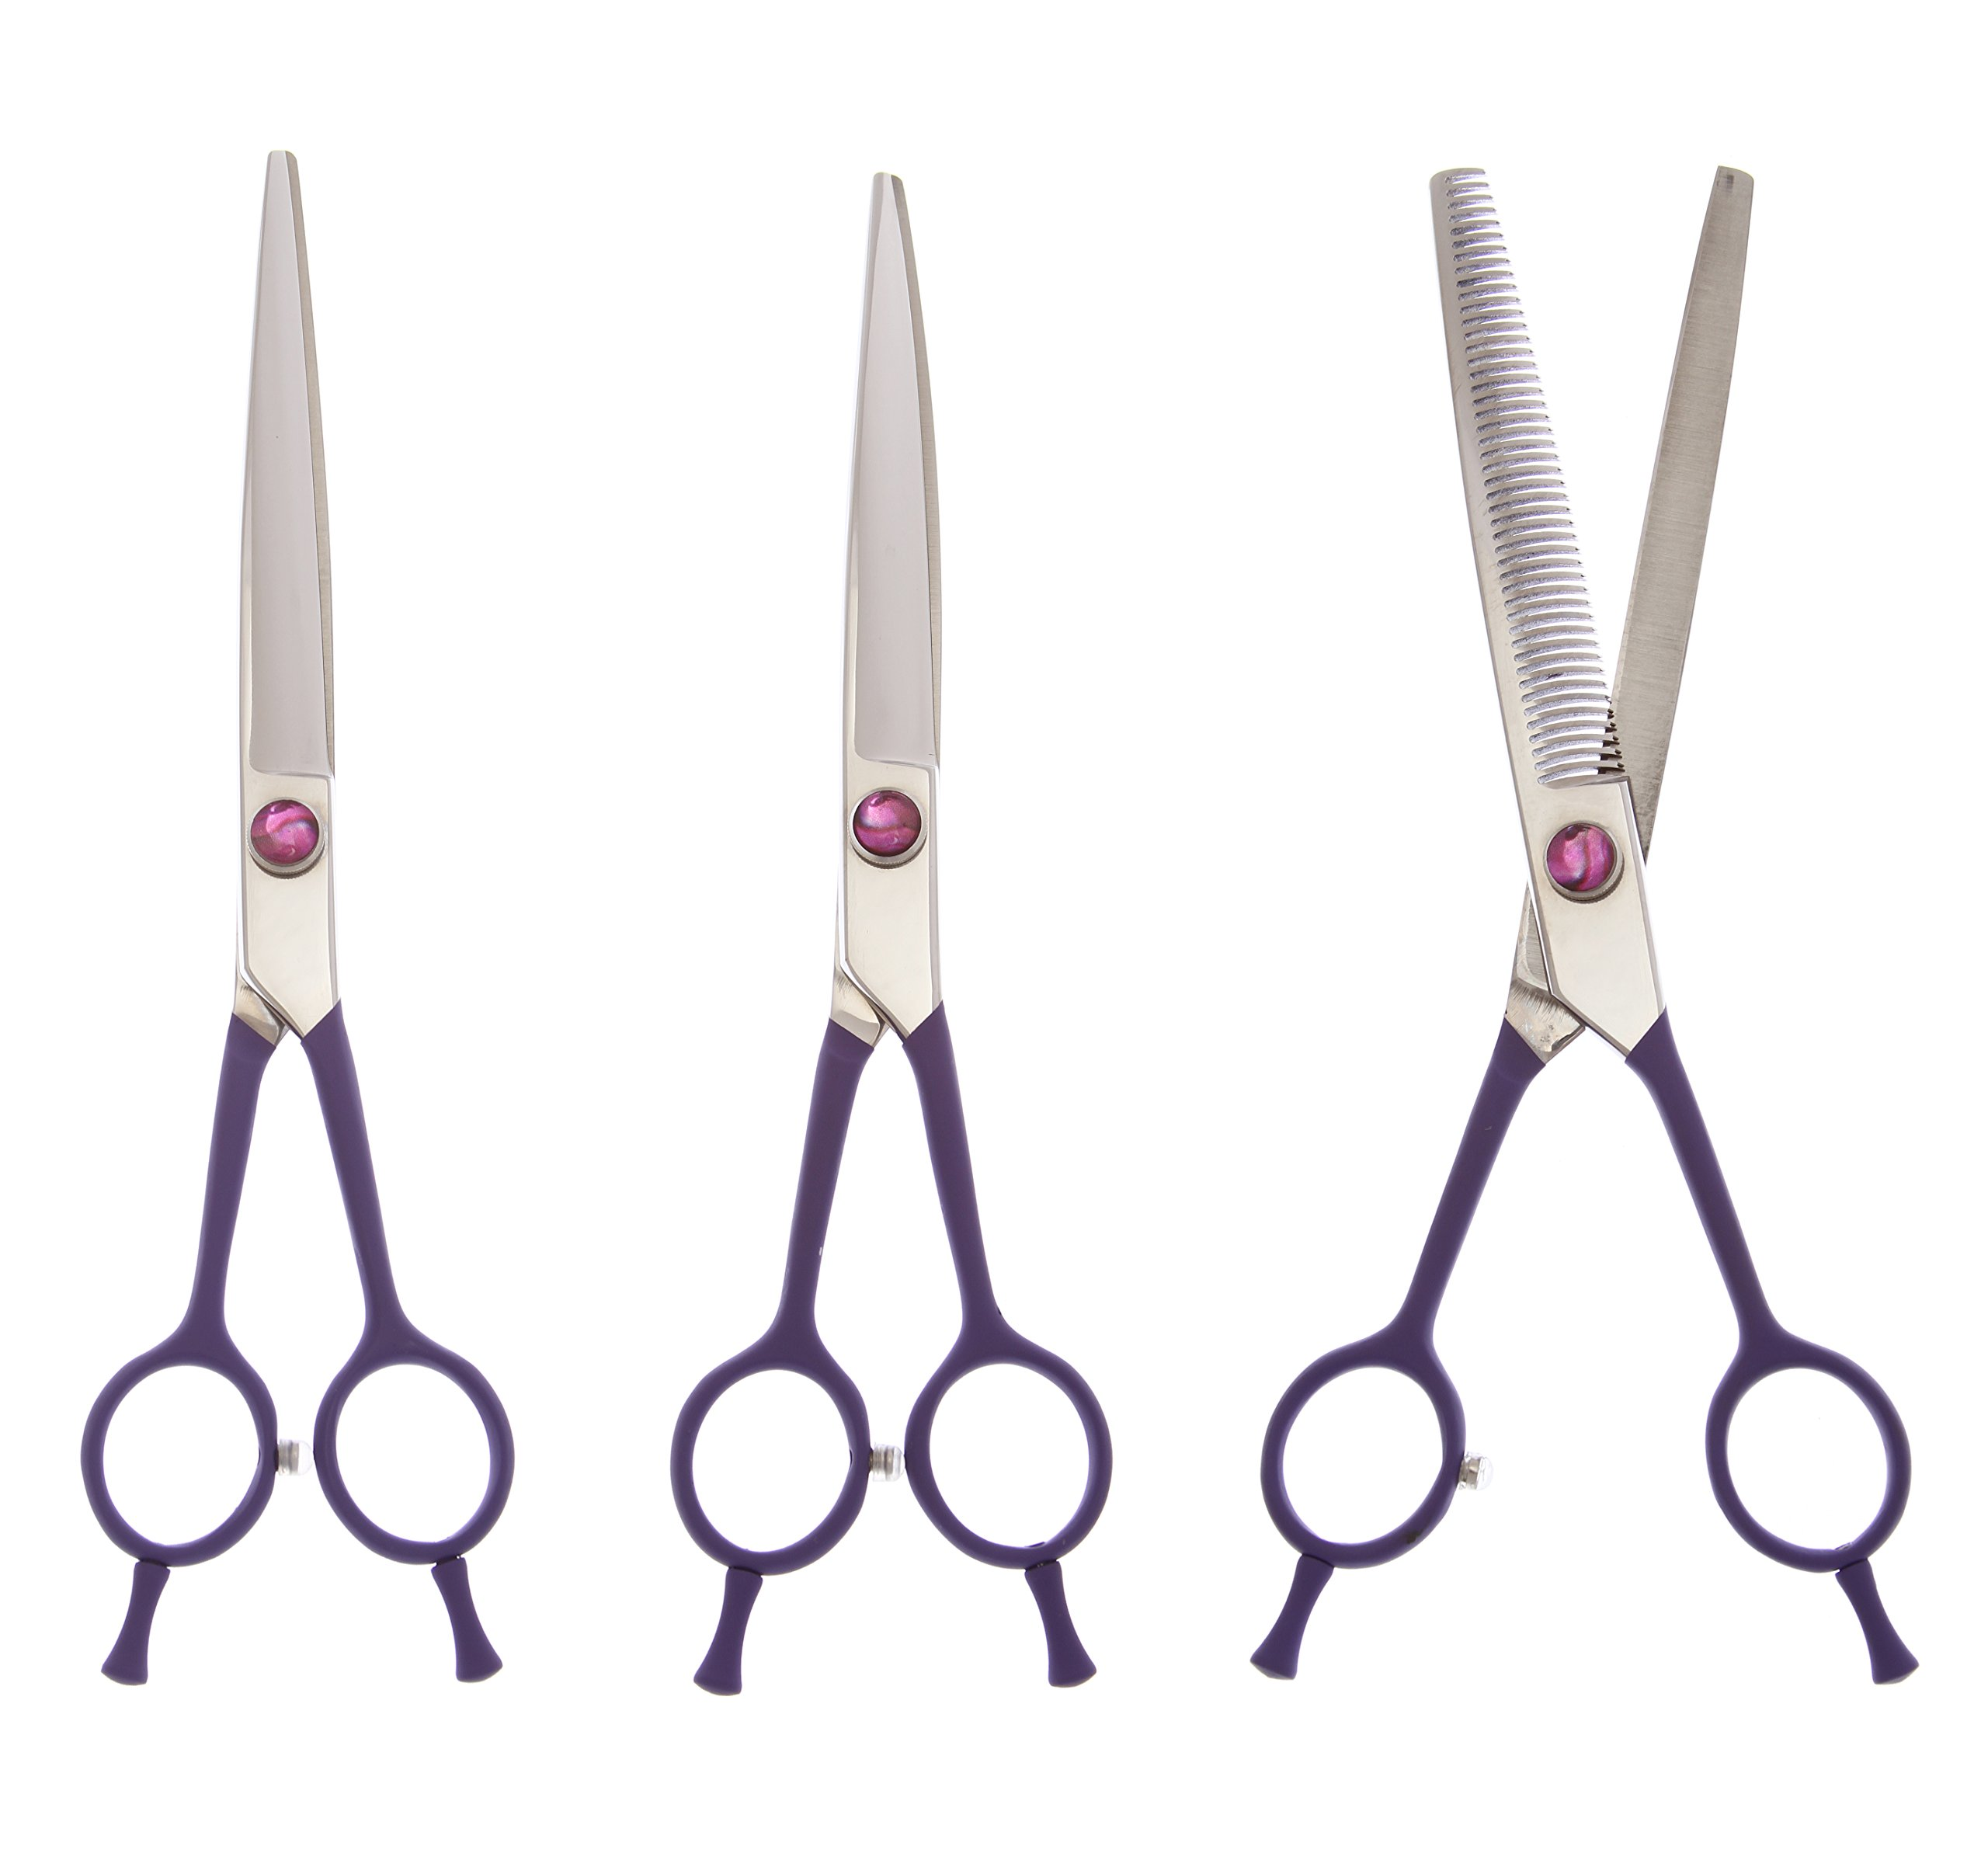 ShearsDirect 3 Piece Japanese Stainless Steel Straight, Curved and 46 Teeth Shear Set, 7.5'' by ShearsDirect